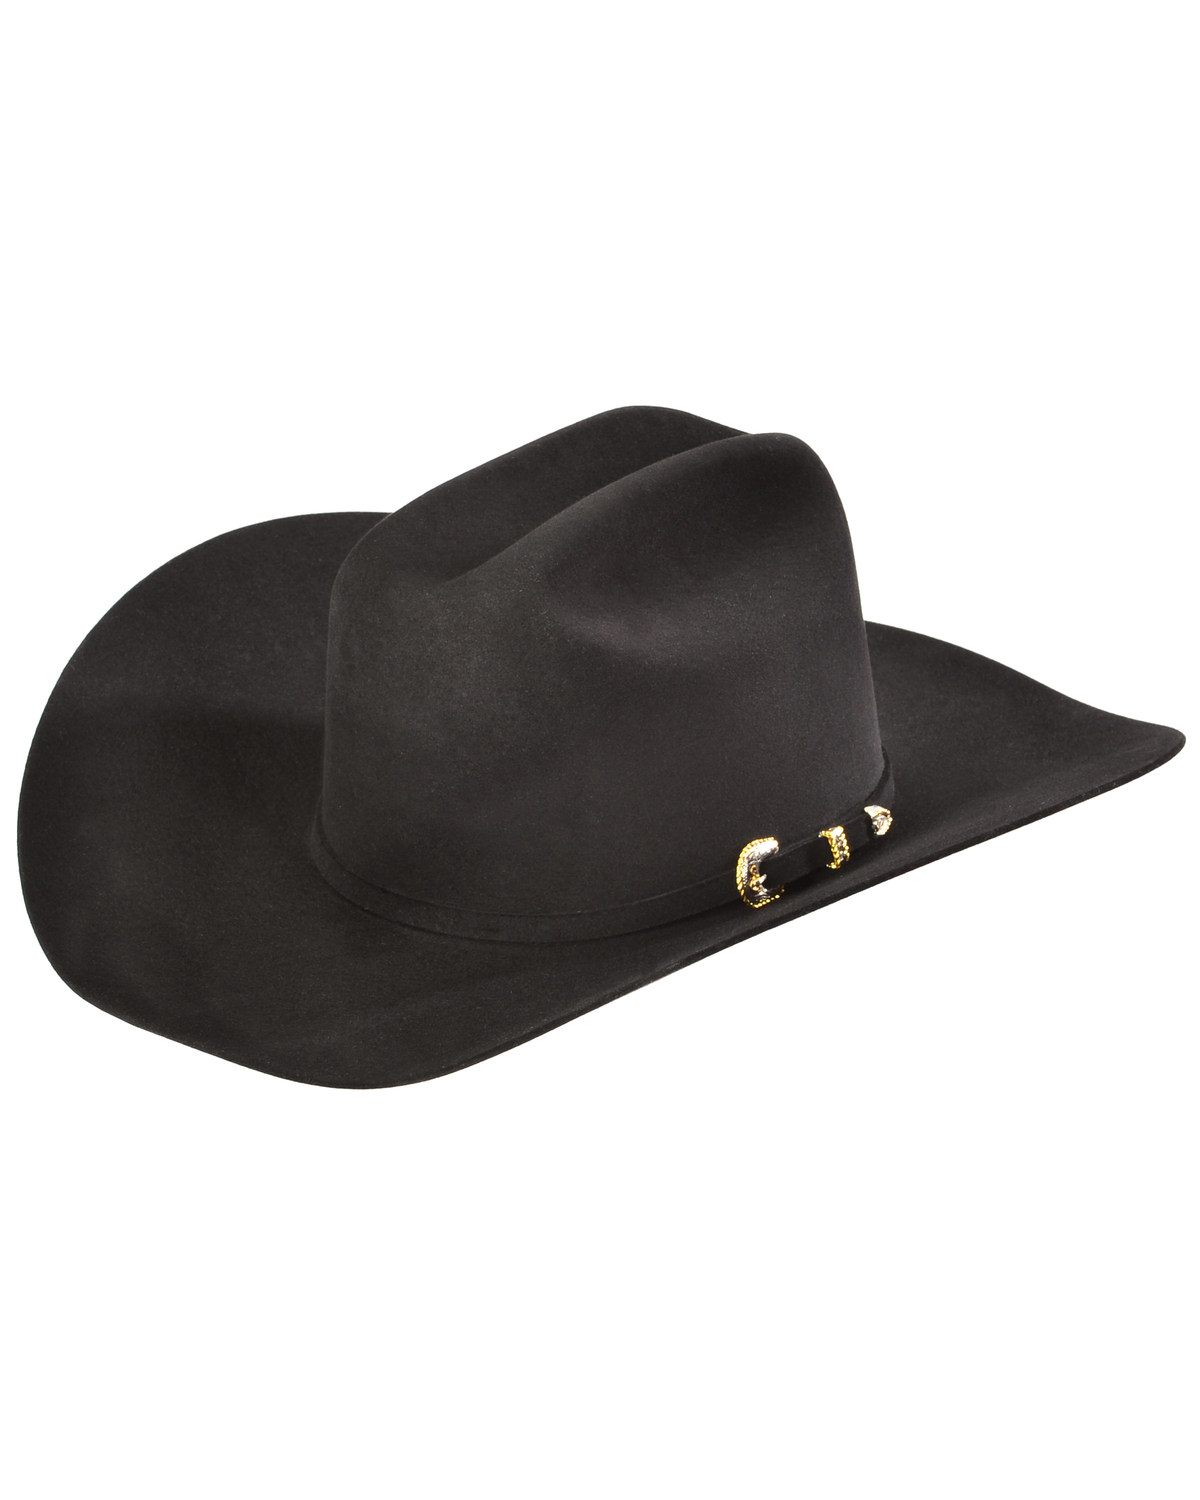 Serratelli Men s Black 10X Fur Felt Austin Cowboy Hat  bd922002cd2